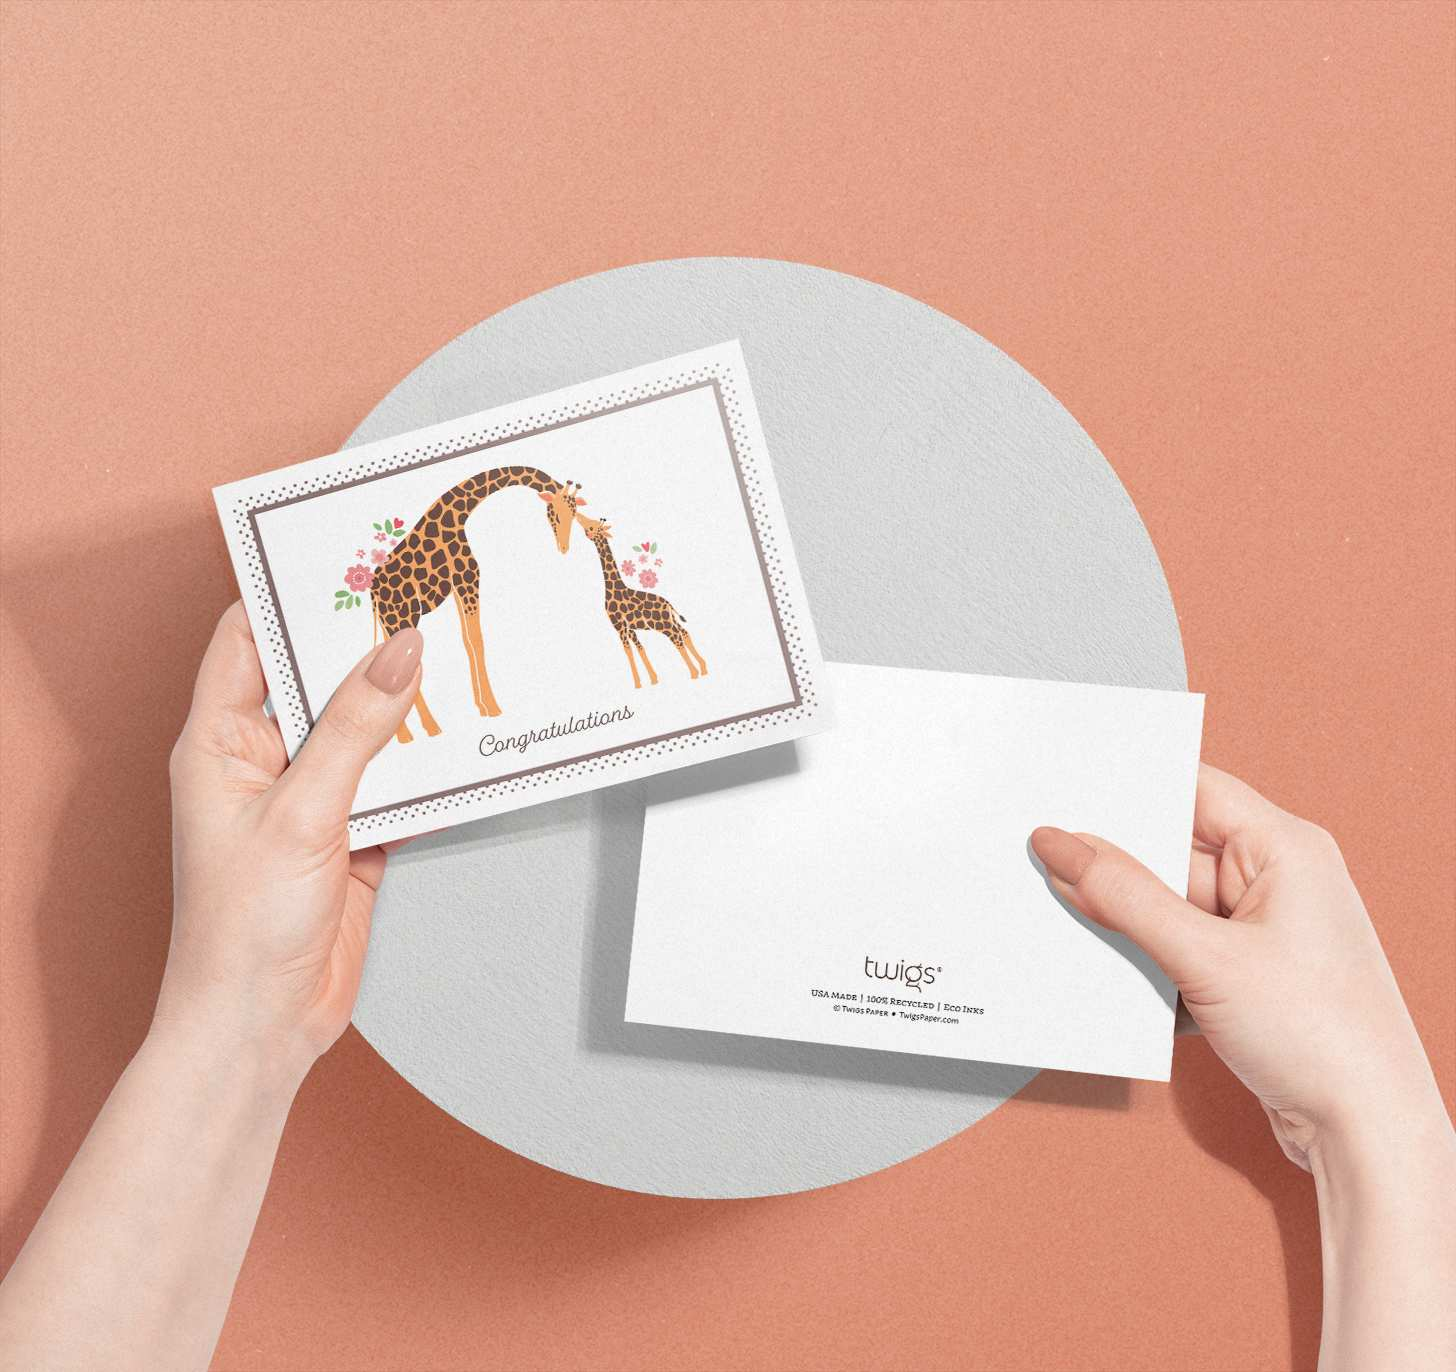 Woman's hands holding two cards with mother and baby giraffe designs